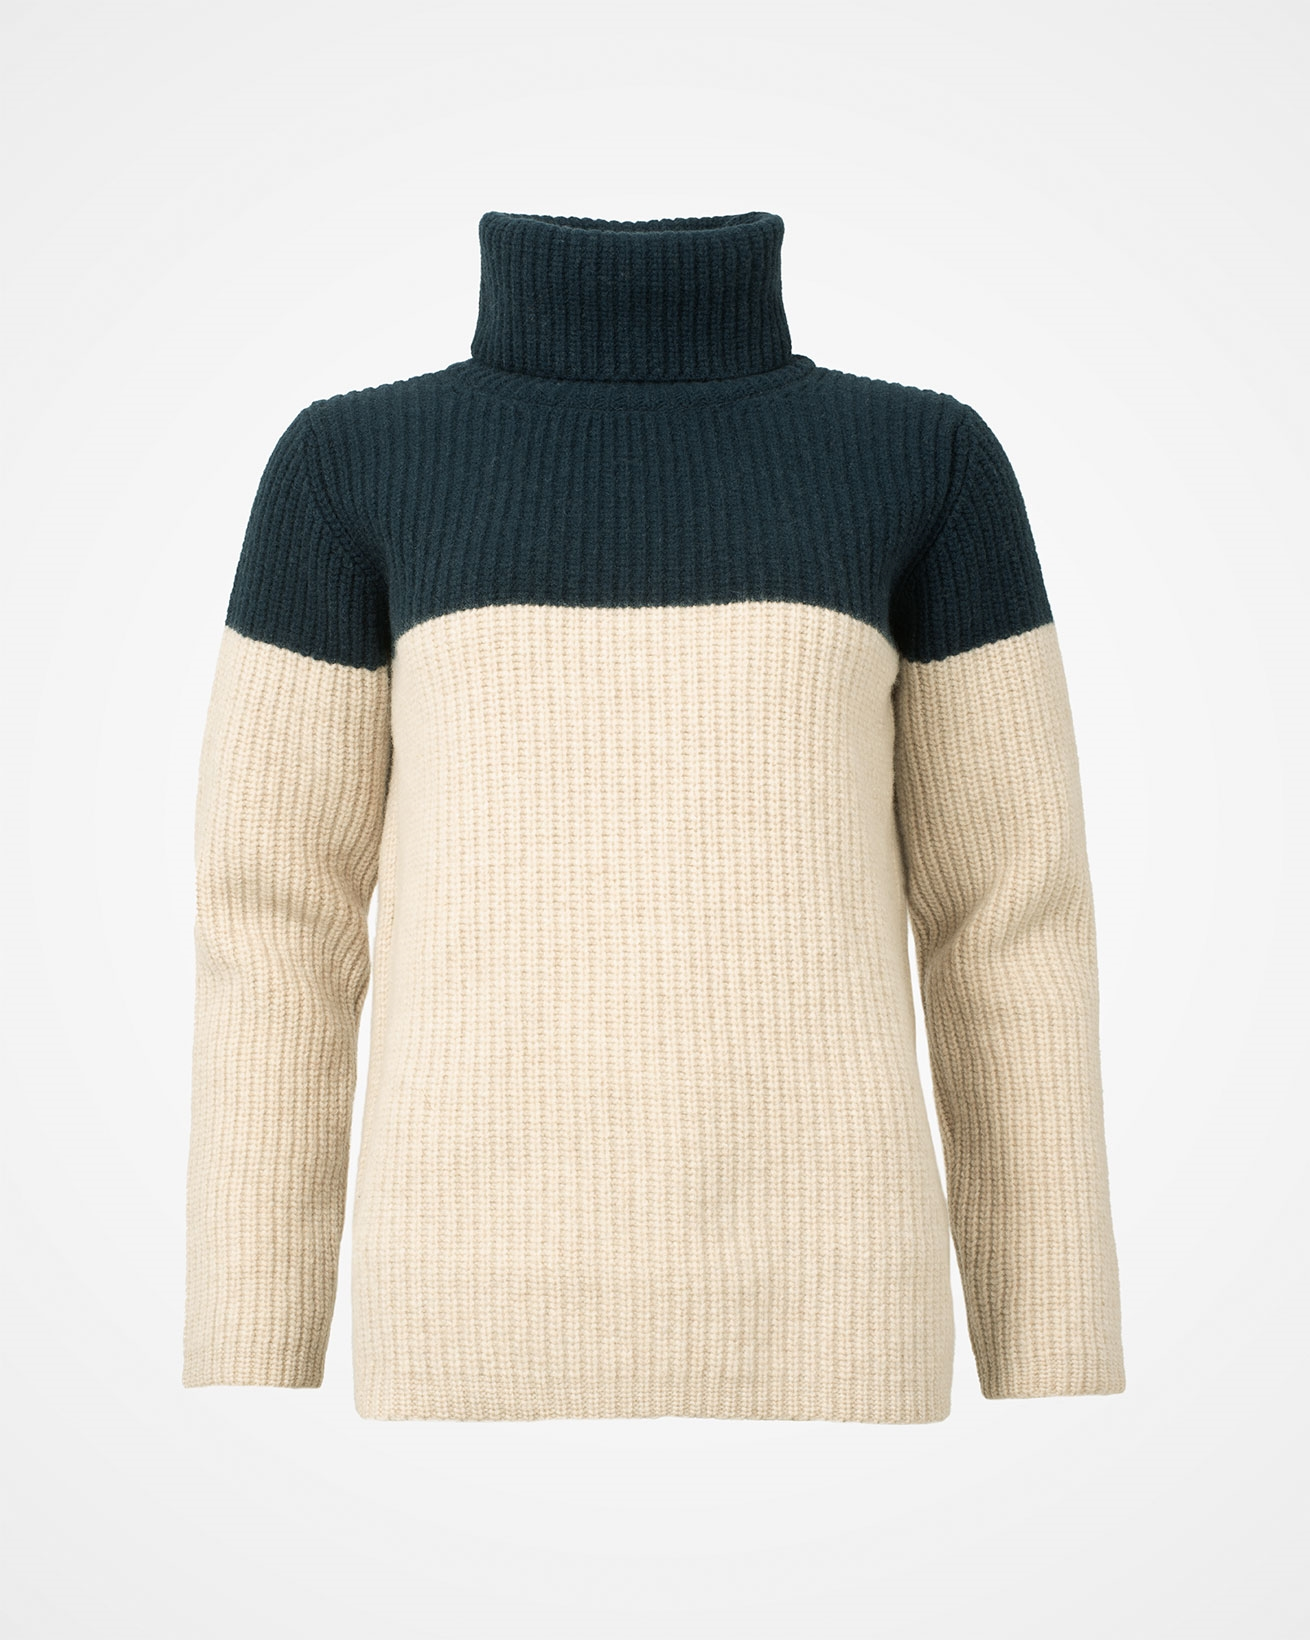 7399_colourblock-roll-neck_icelandic-colourblock_front.jpg